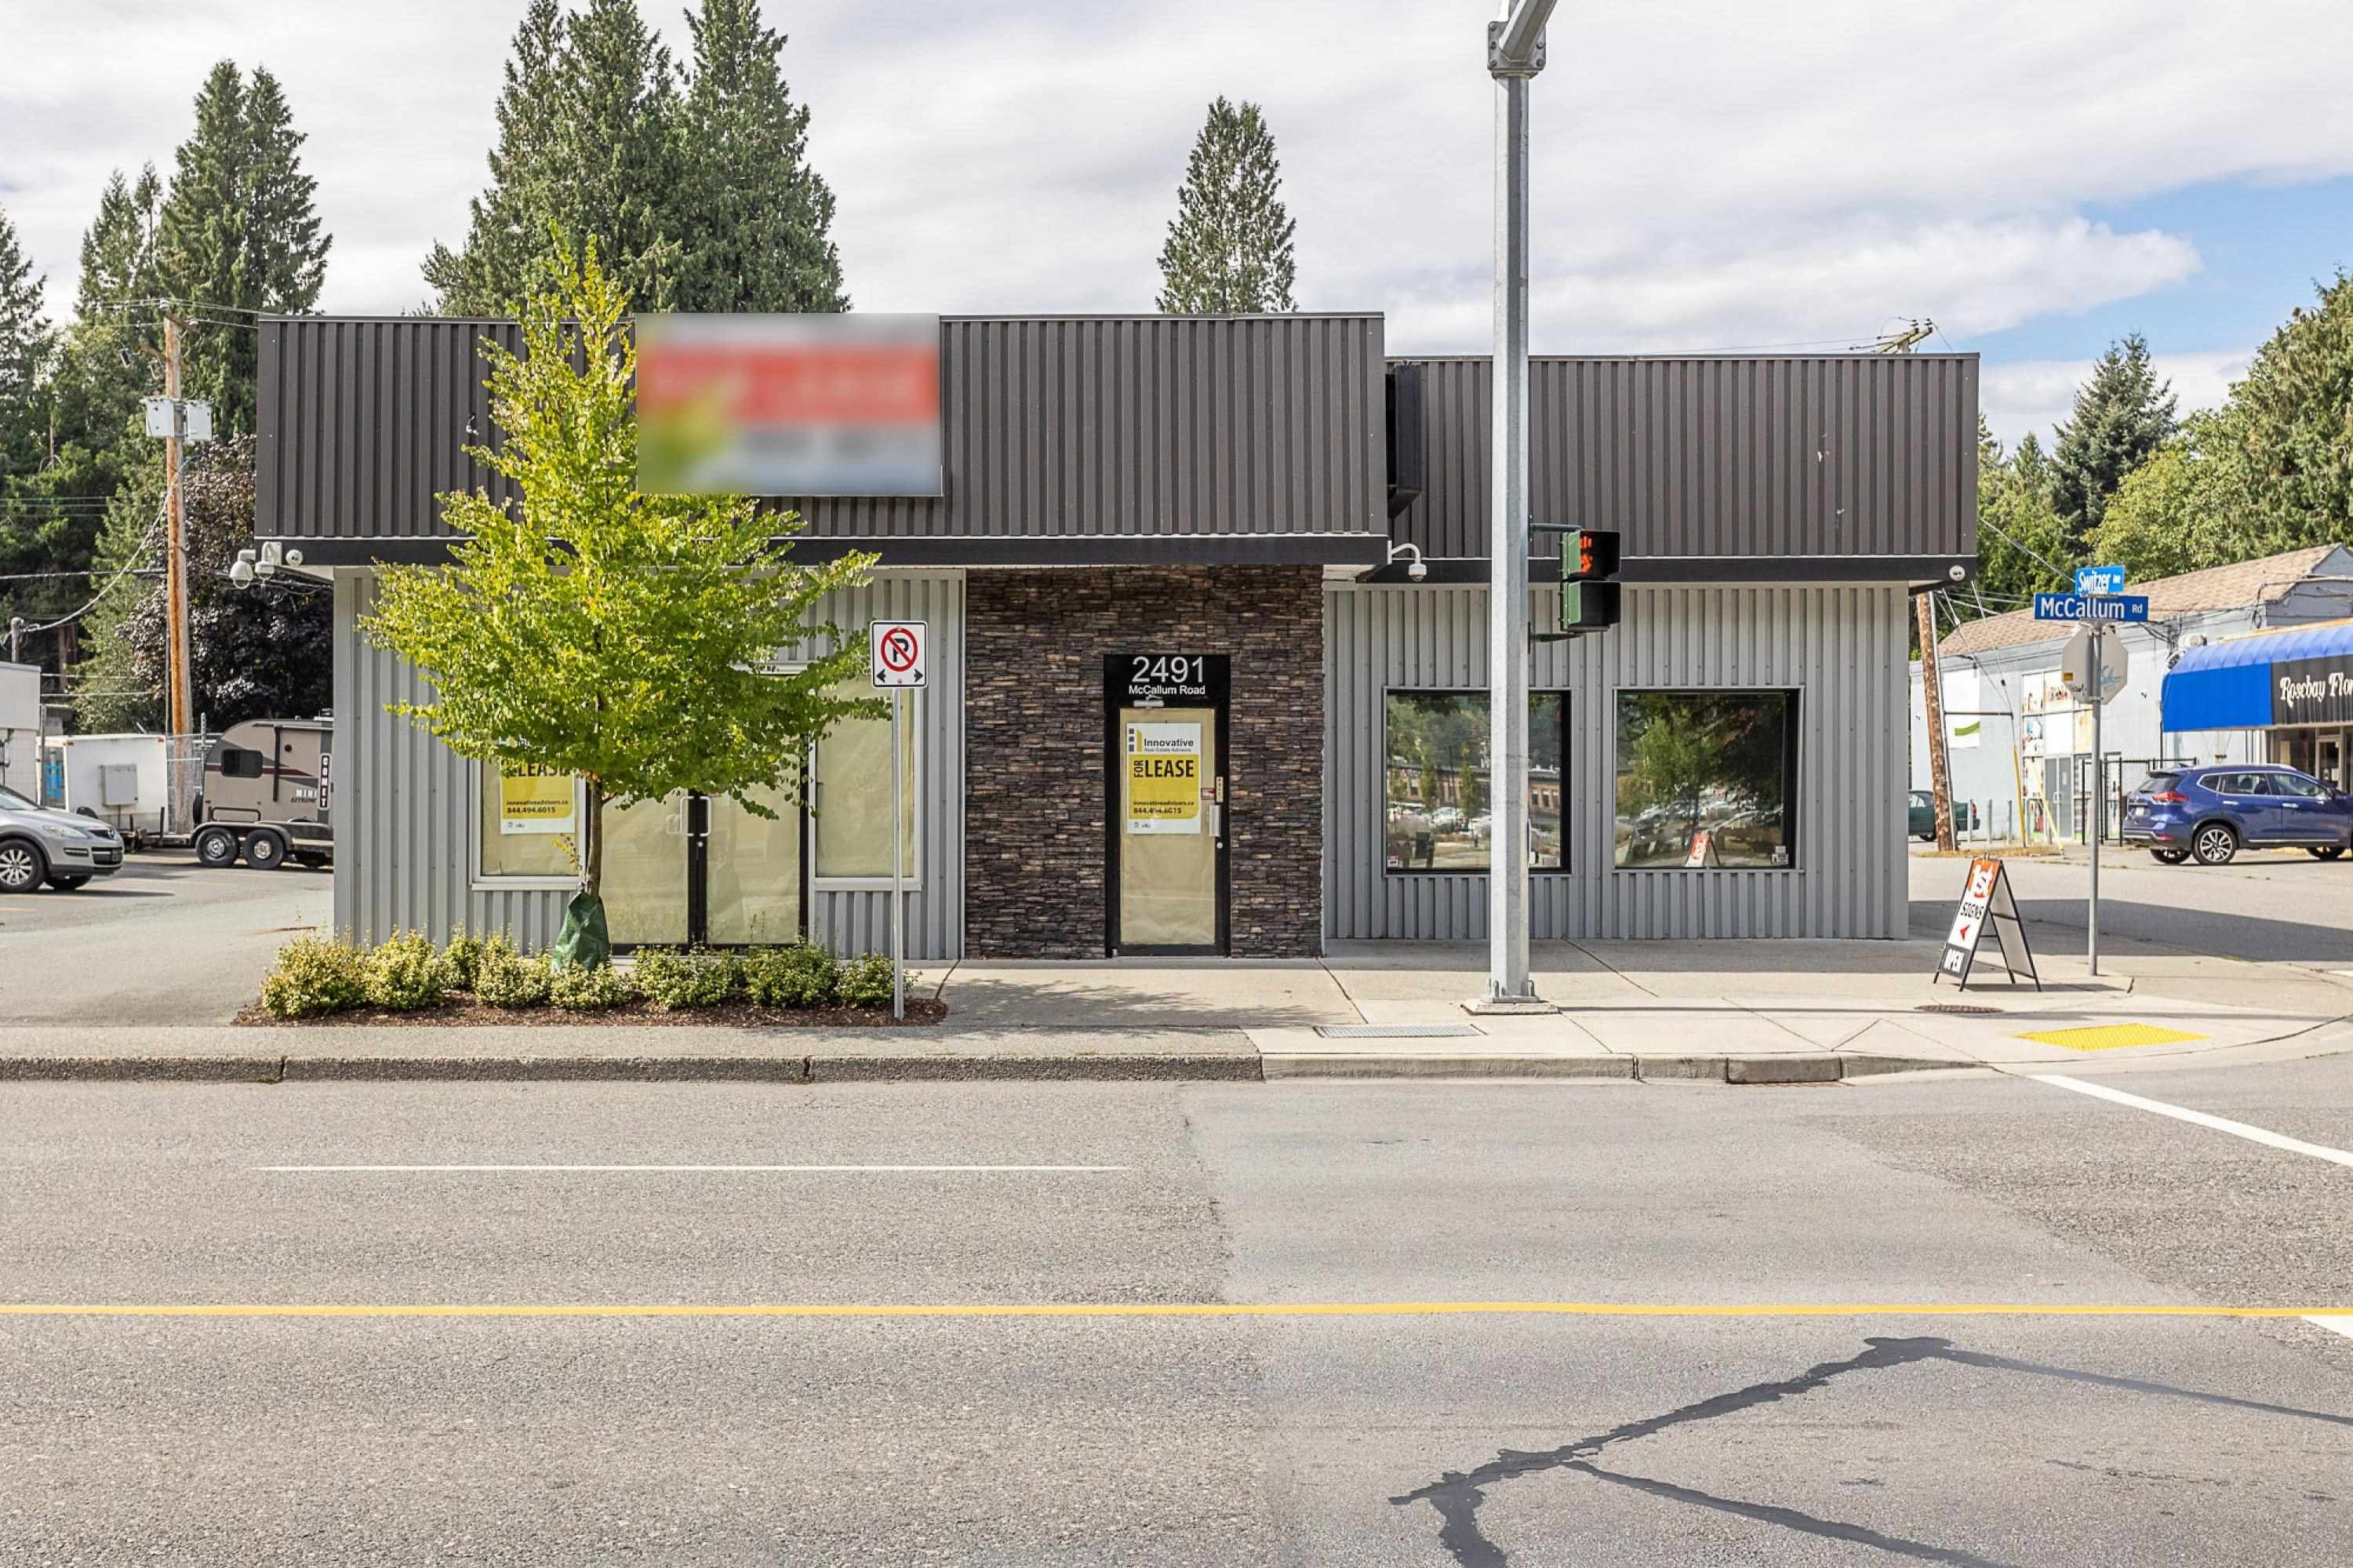 Main Photo: 2491 MCCALLUM Road in Abbotsford: Central Abbotsford Office for lease : MLS®# C8040210